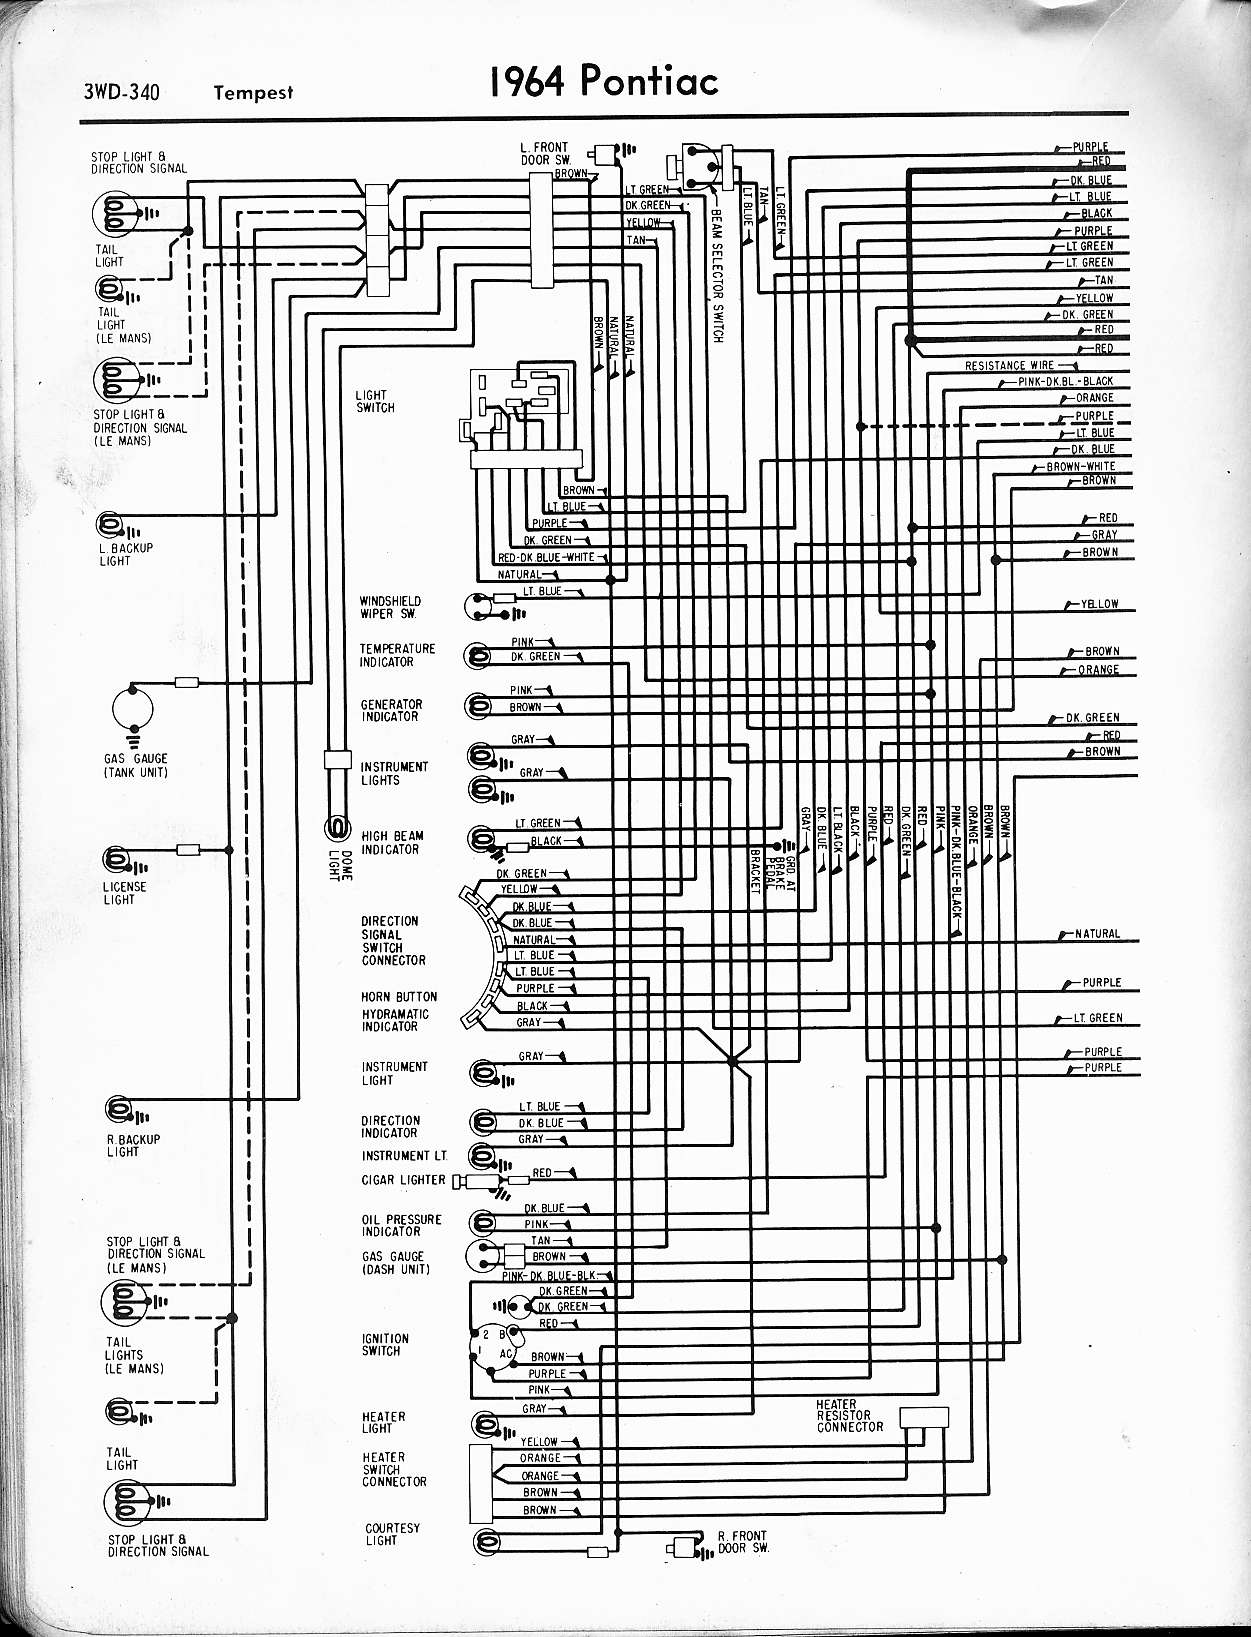 wallace racing wiring diagrams rh wallaceracing com 07 pontiac g6 ignition wiring  diagram 2000 pontiac sunfire ignition wiring diagram